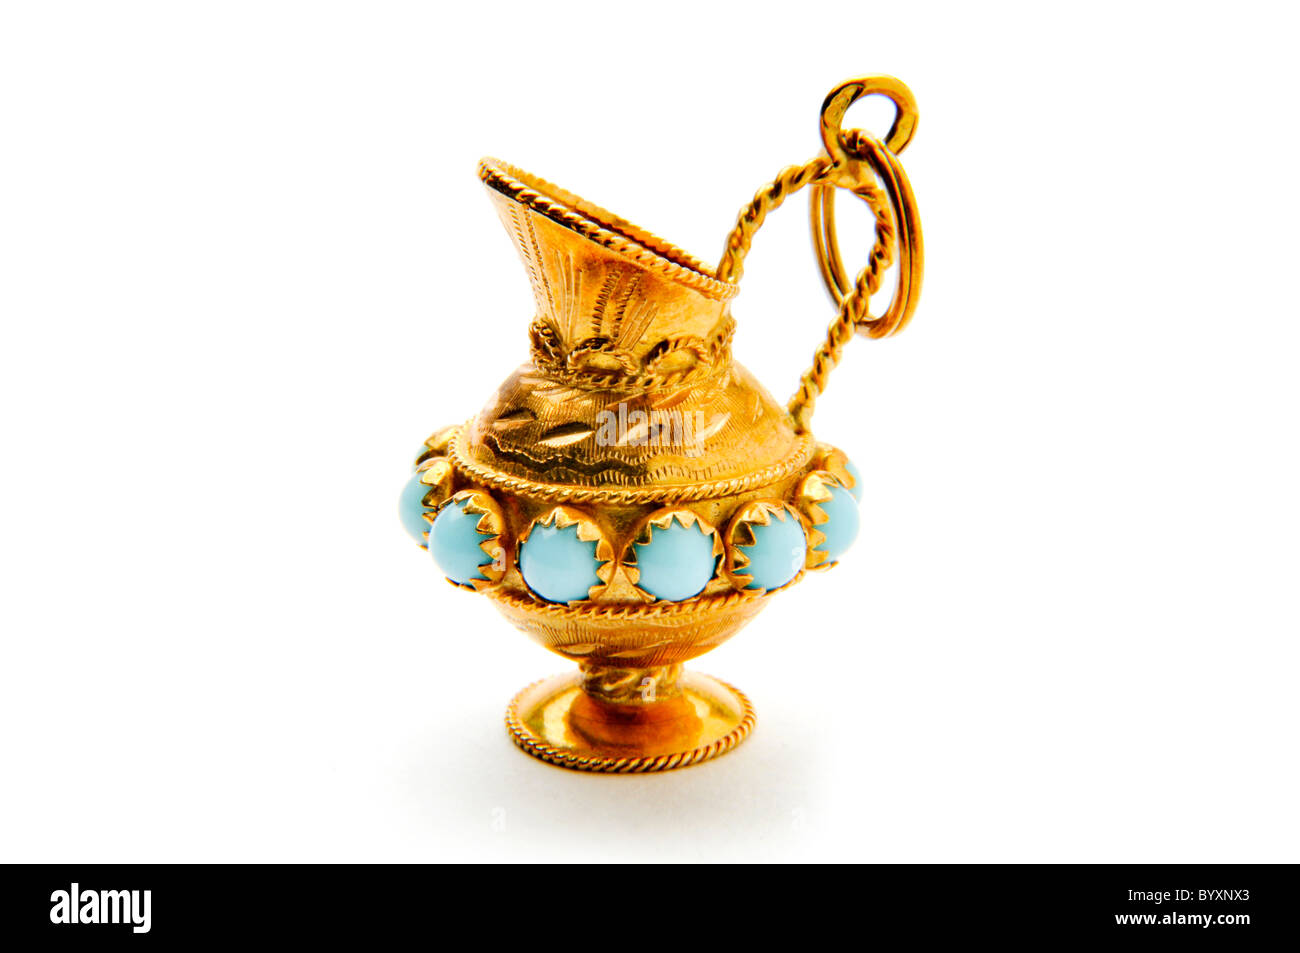 small gold necklace pendant of drinking pitcher circa 1962 - Stock Image